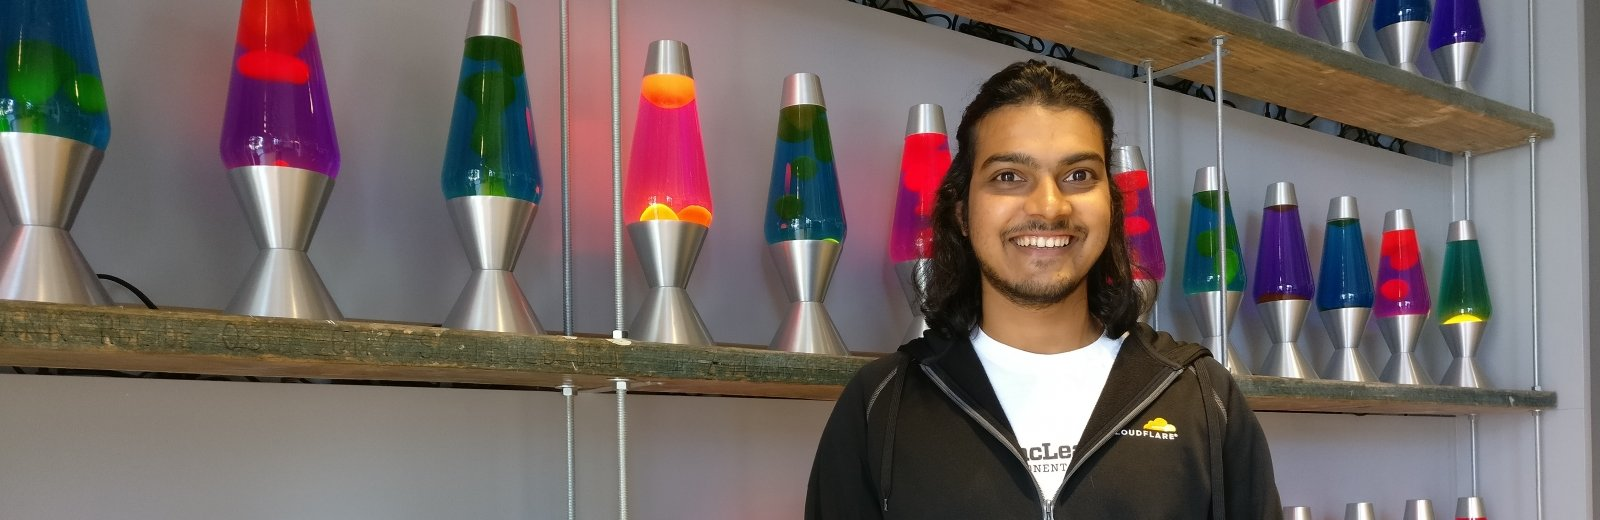 A very happy (smiling) college student stands in front of a shelf full of multi-colored lava lamps.